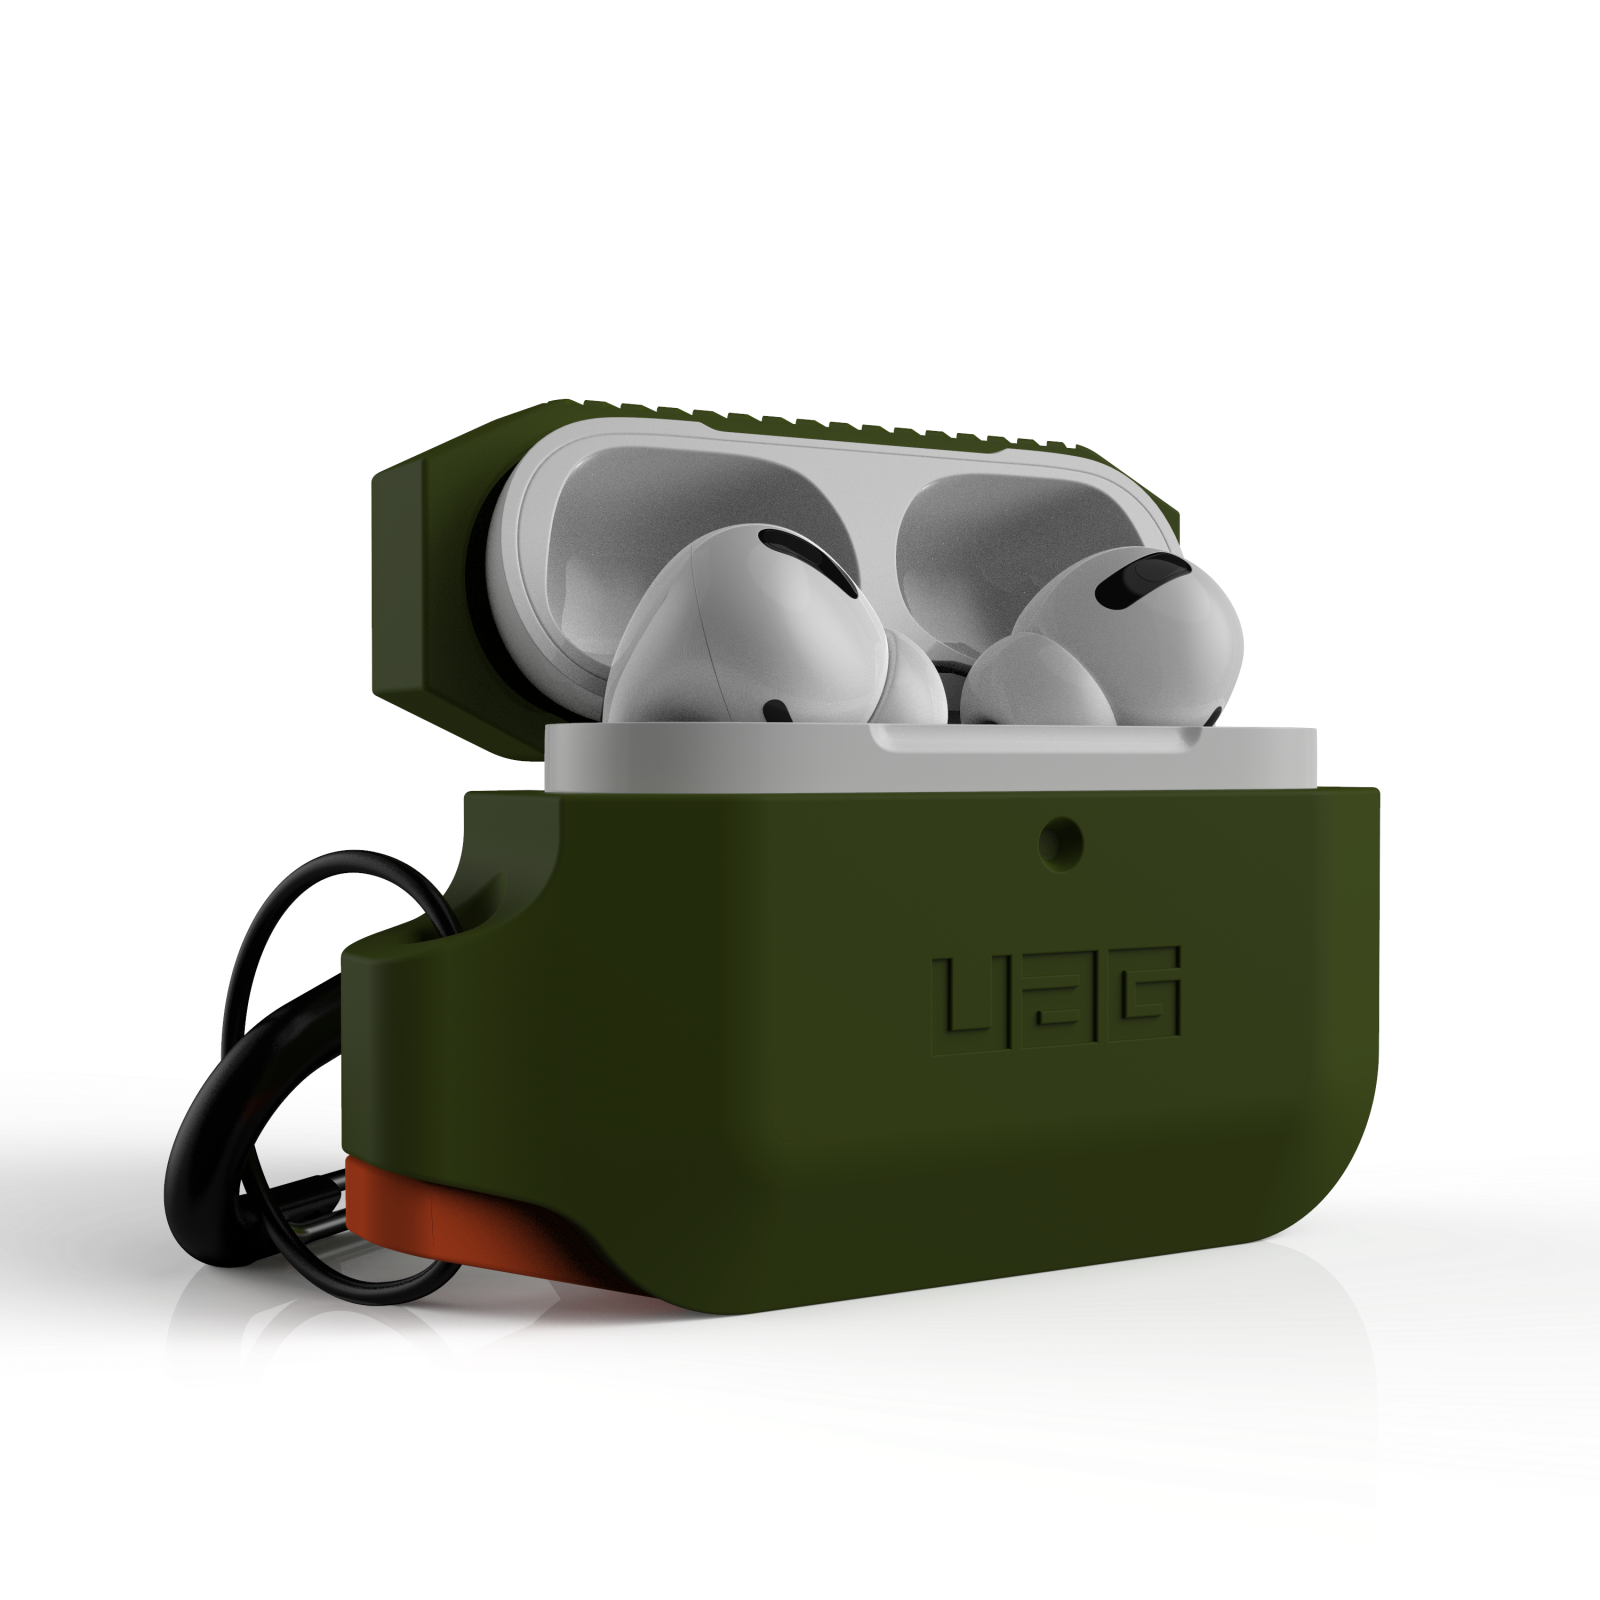 ỐP BẢO VỆ CHỐNG SỐC UAG SILICON CHO AIRPODS PRO - Olive